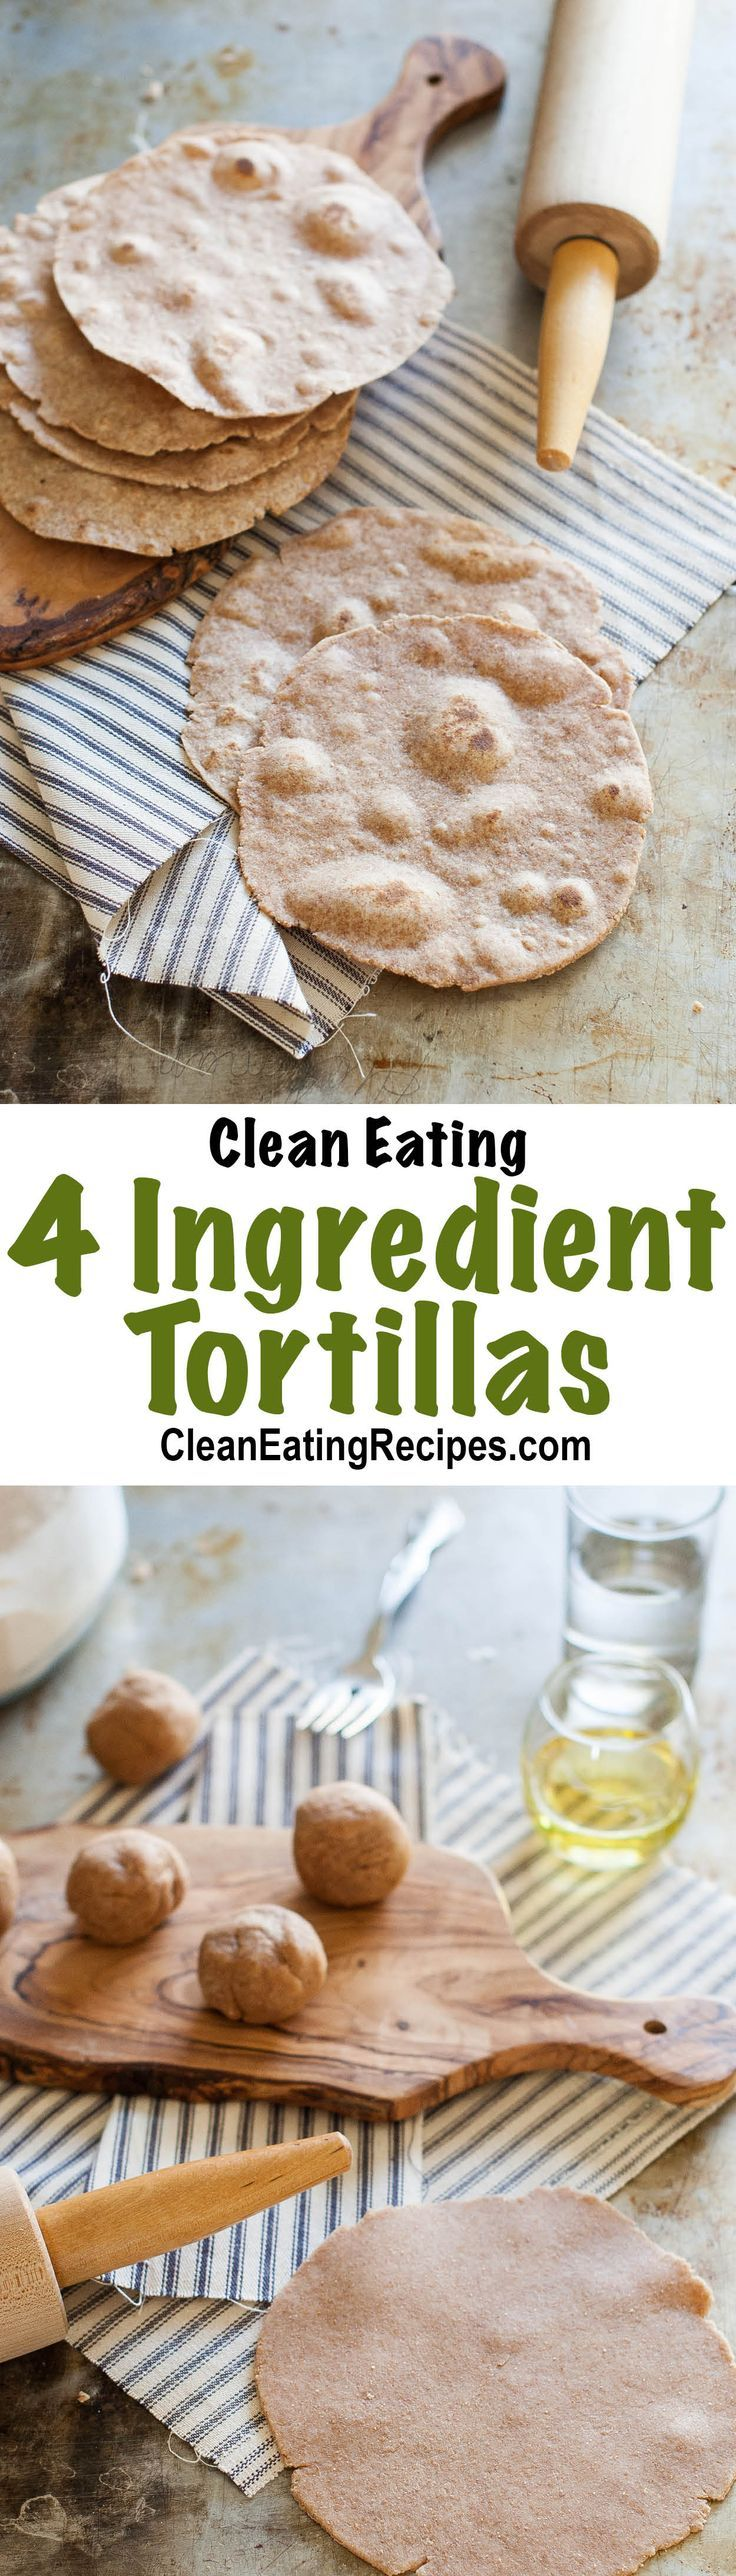 I love this Clean Eating Tortillas Recipe.They only take a few minutes to cook. I've made these hundreds of times. These can be used for tortillas, tacos, low carb pizza crusts, wraps, etc.